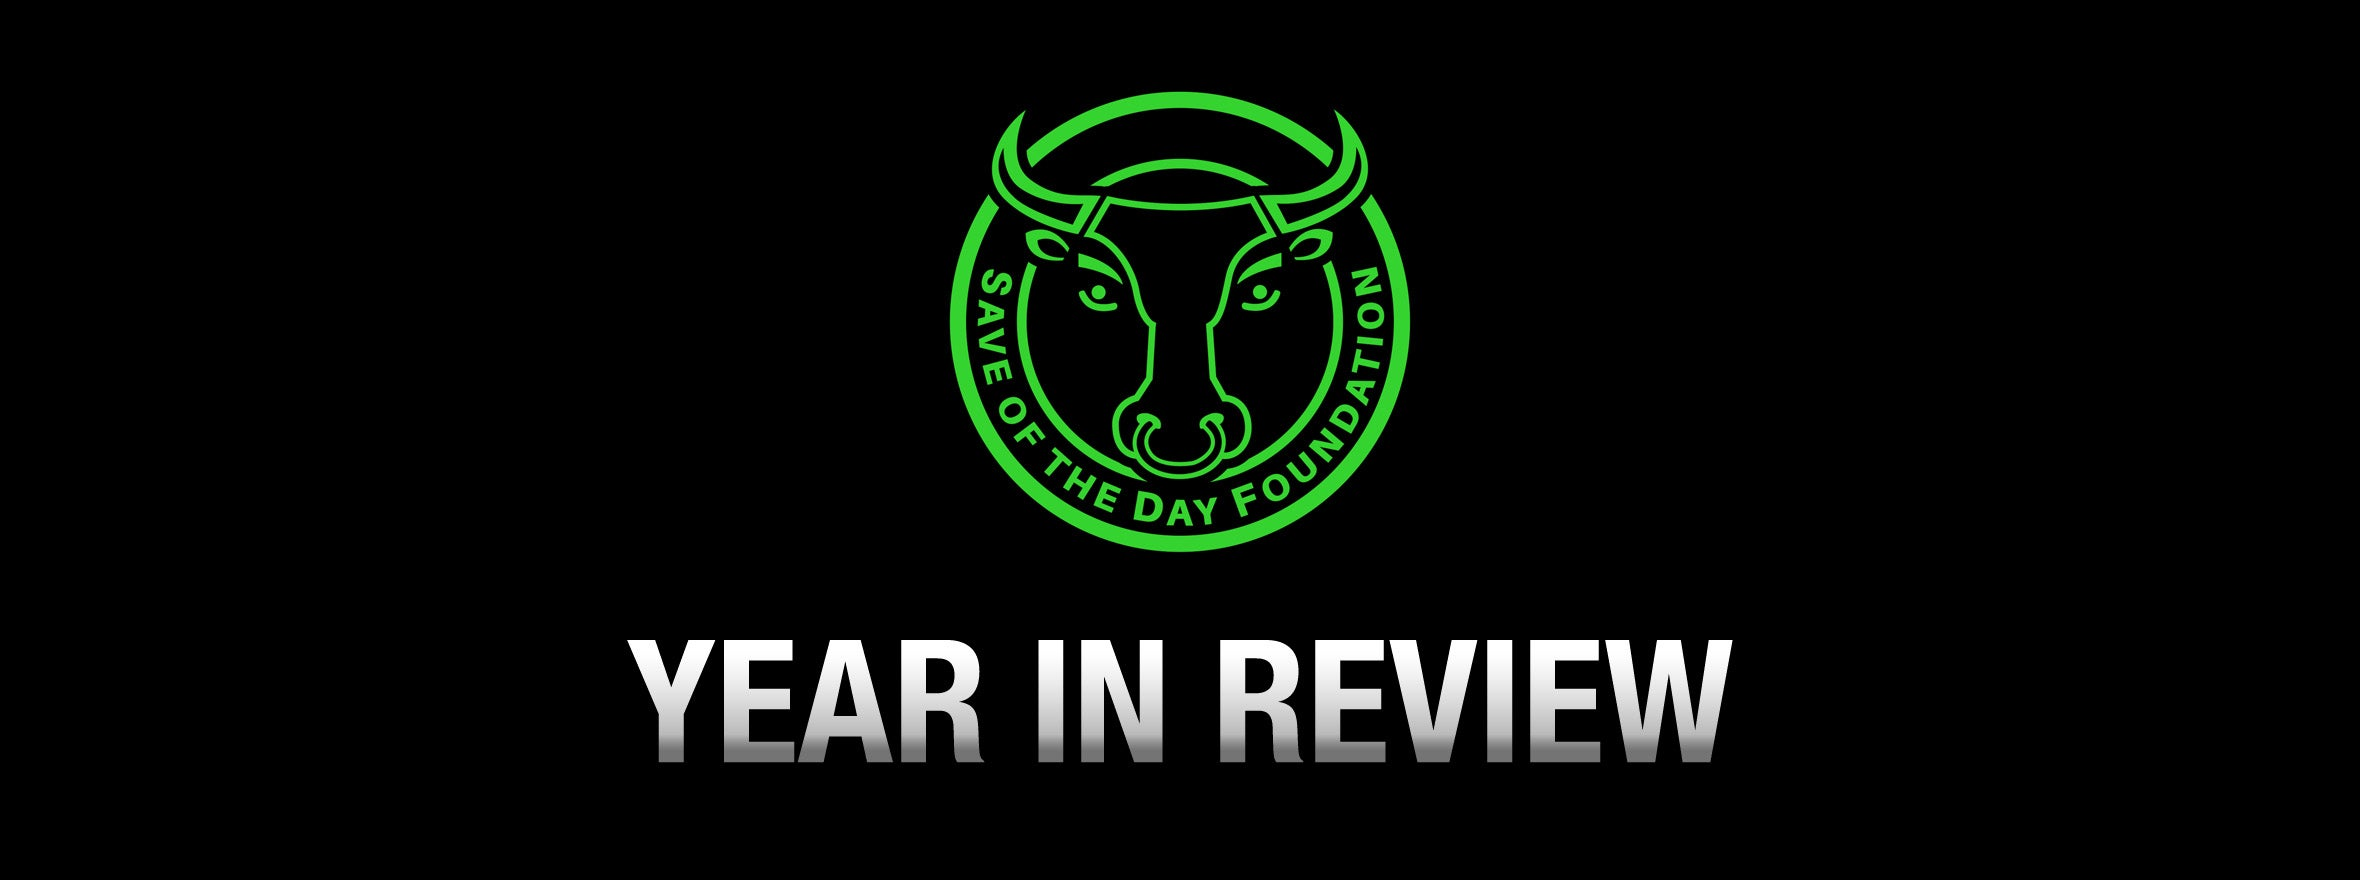 SAVE OF THE DAY FOUNDATION 2019 YEAR IN REVIEW